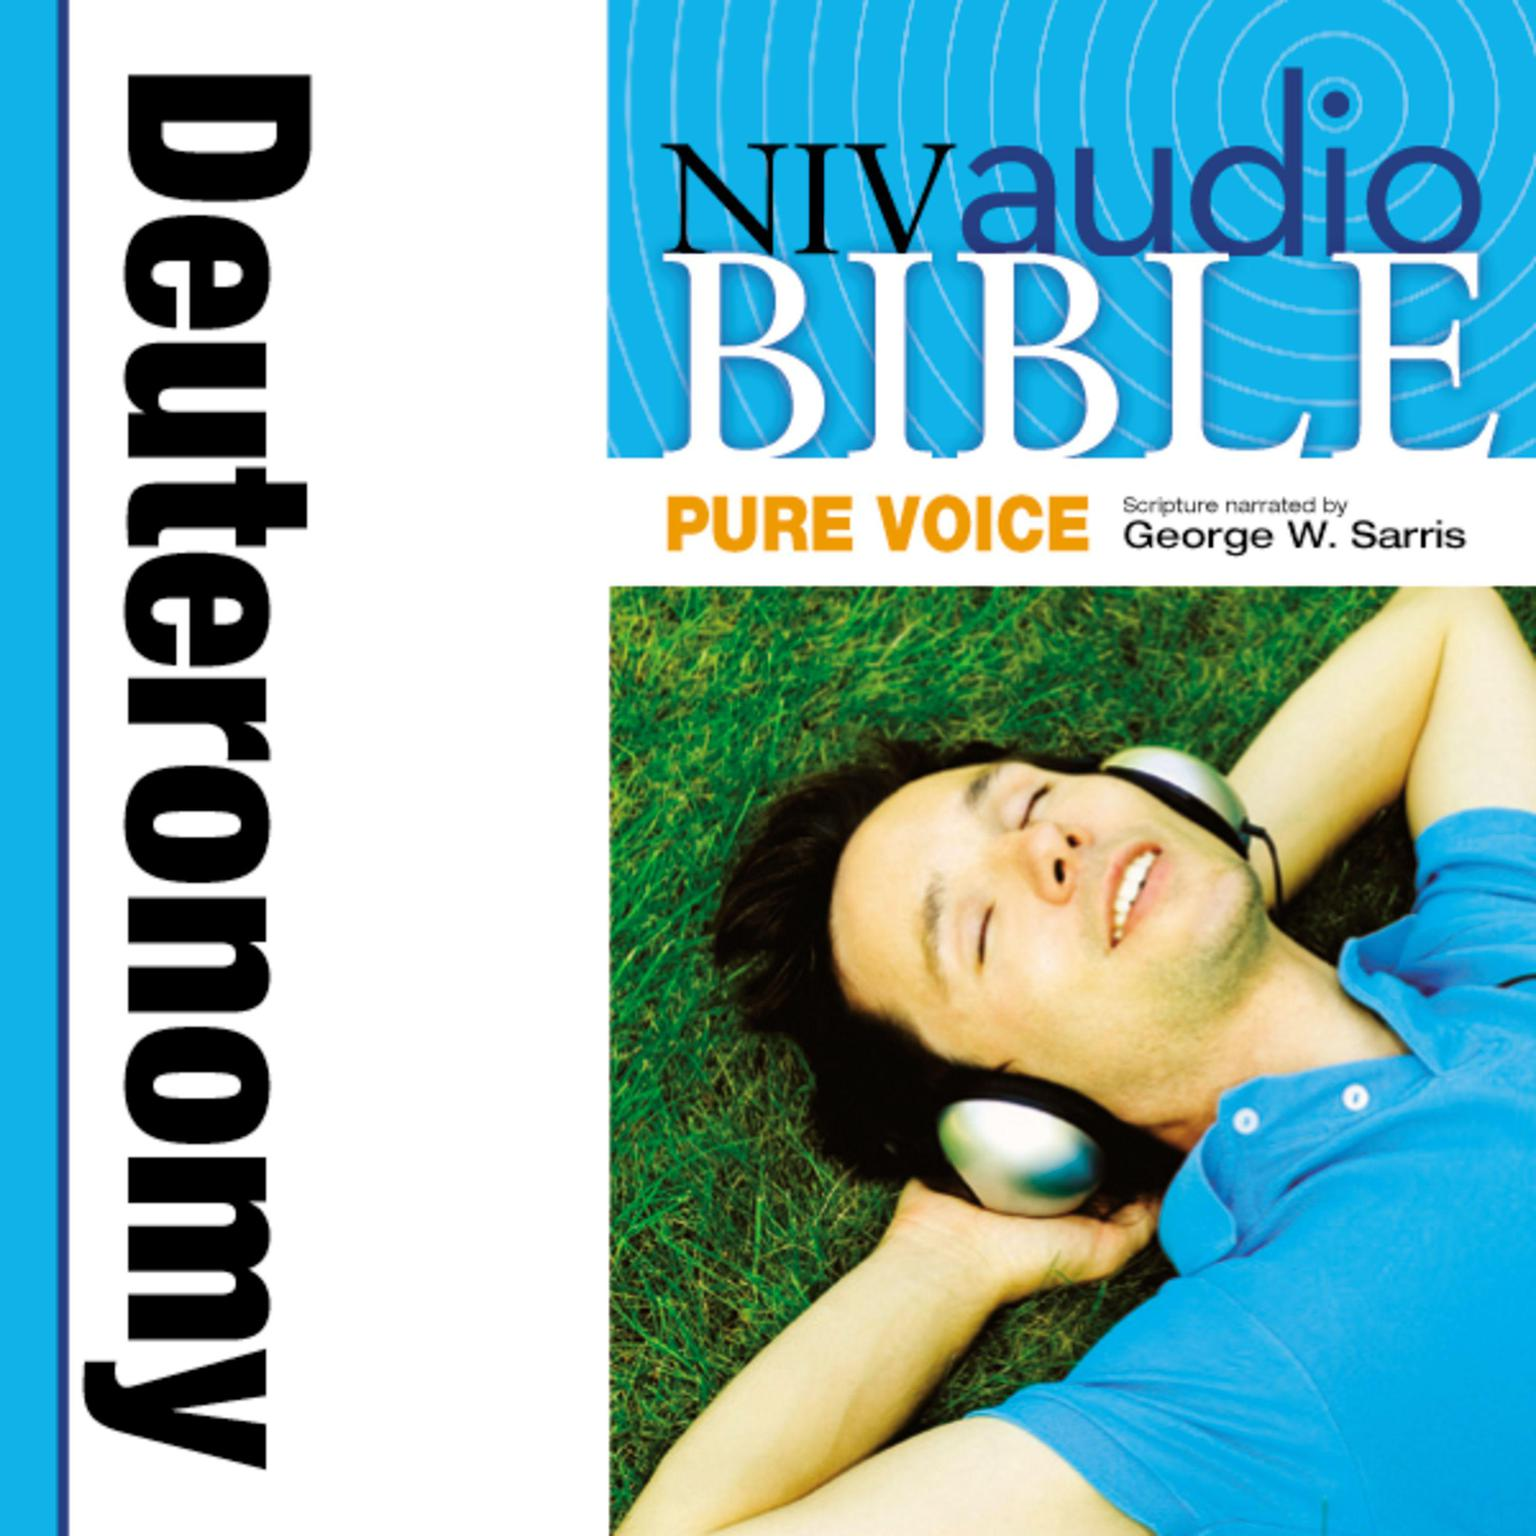 Printable NIV, Audio Bible, Pure Voice: Deuteronomy, Audio Download (Narrated by George W. Sarris) Audiobook Cover Art